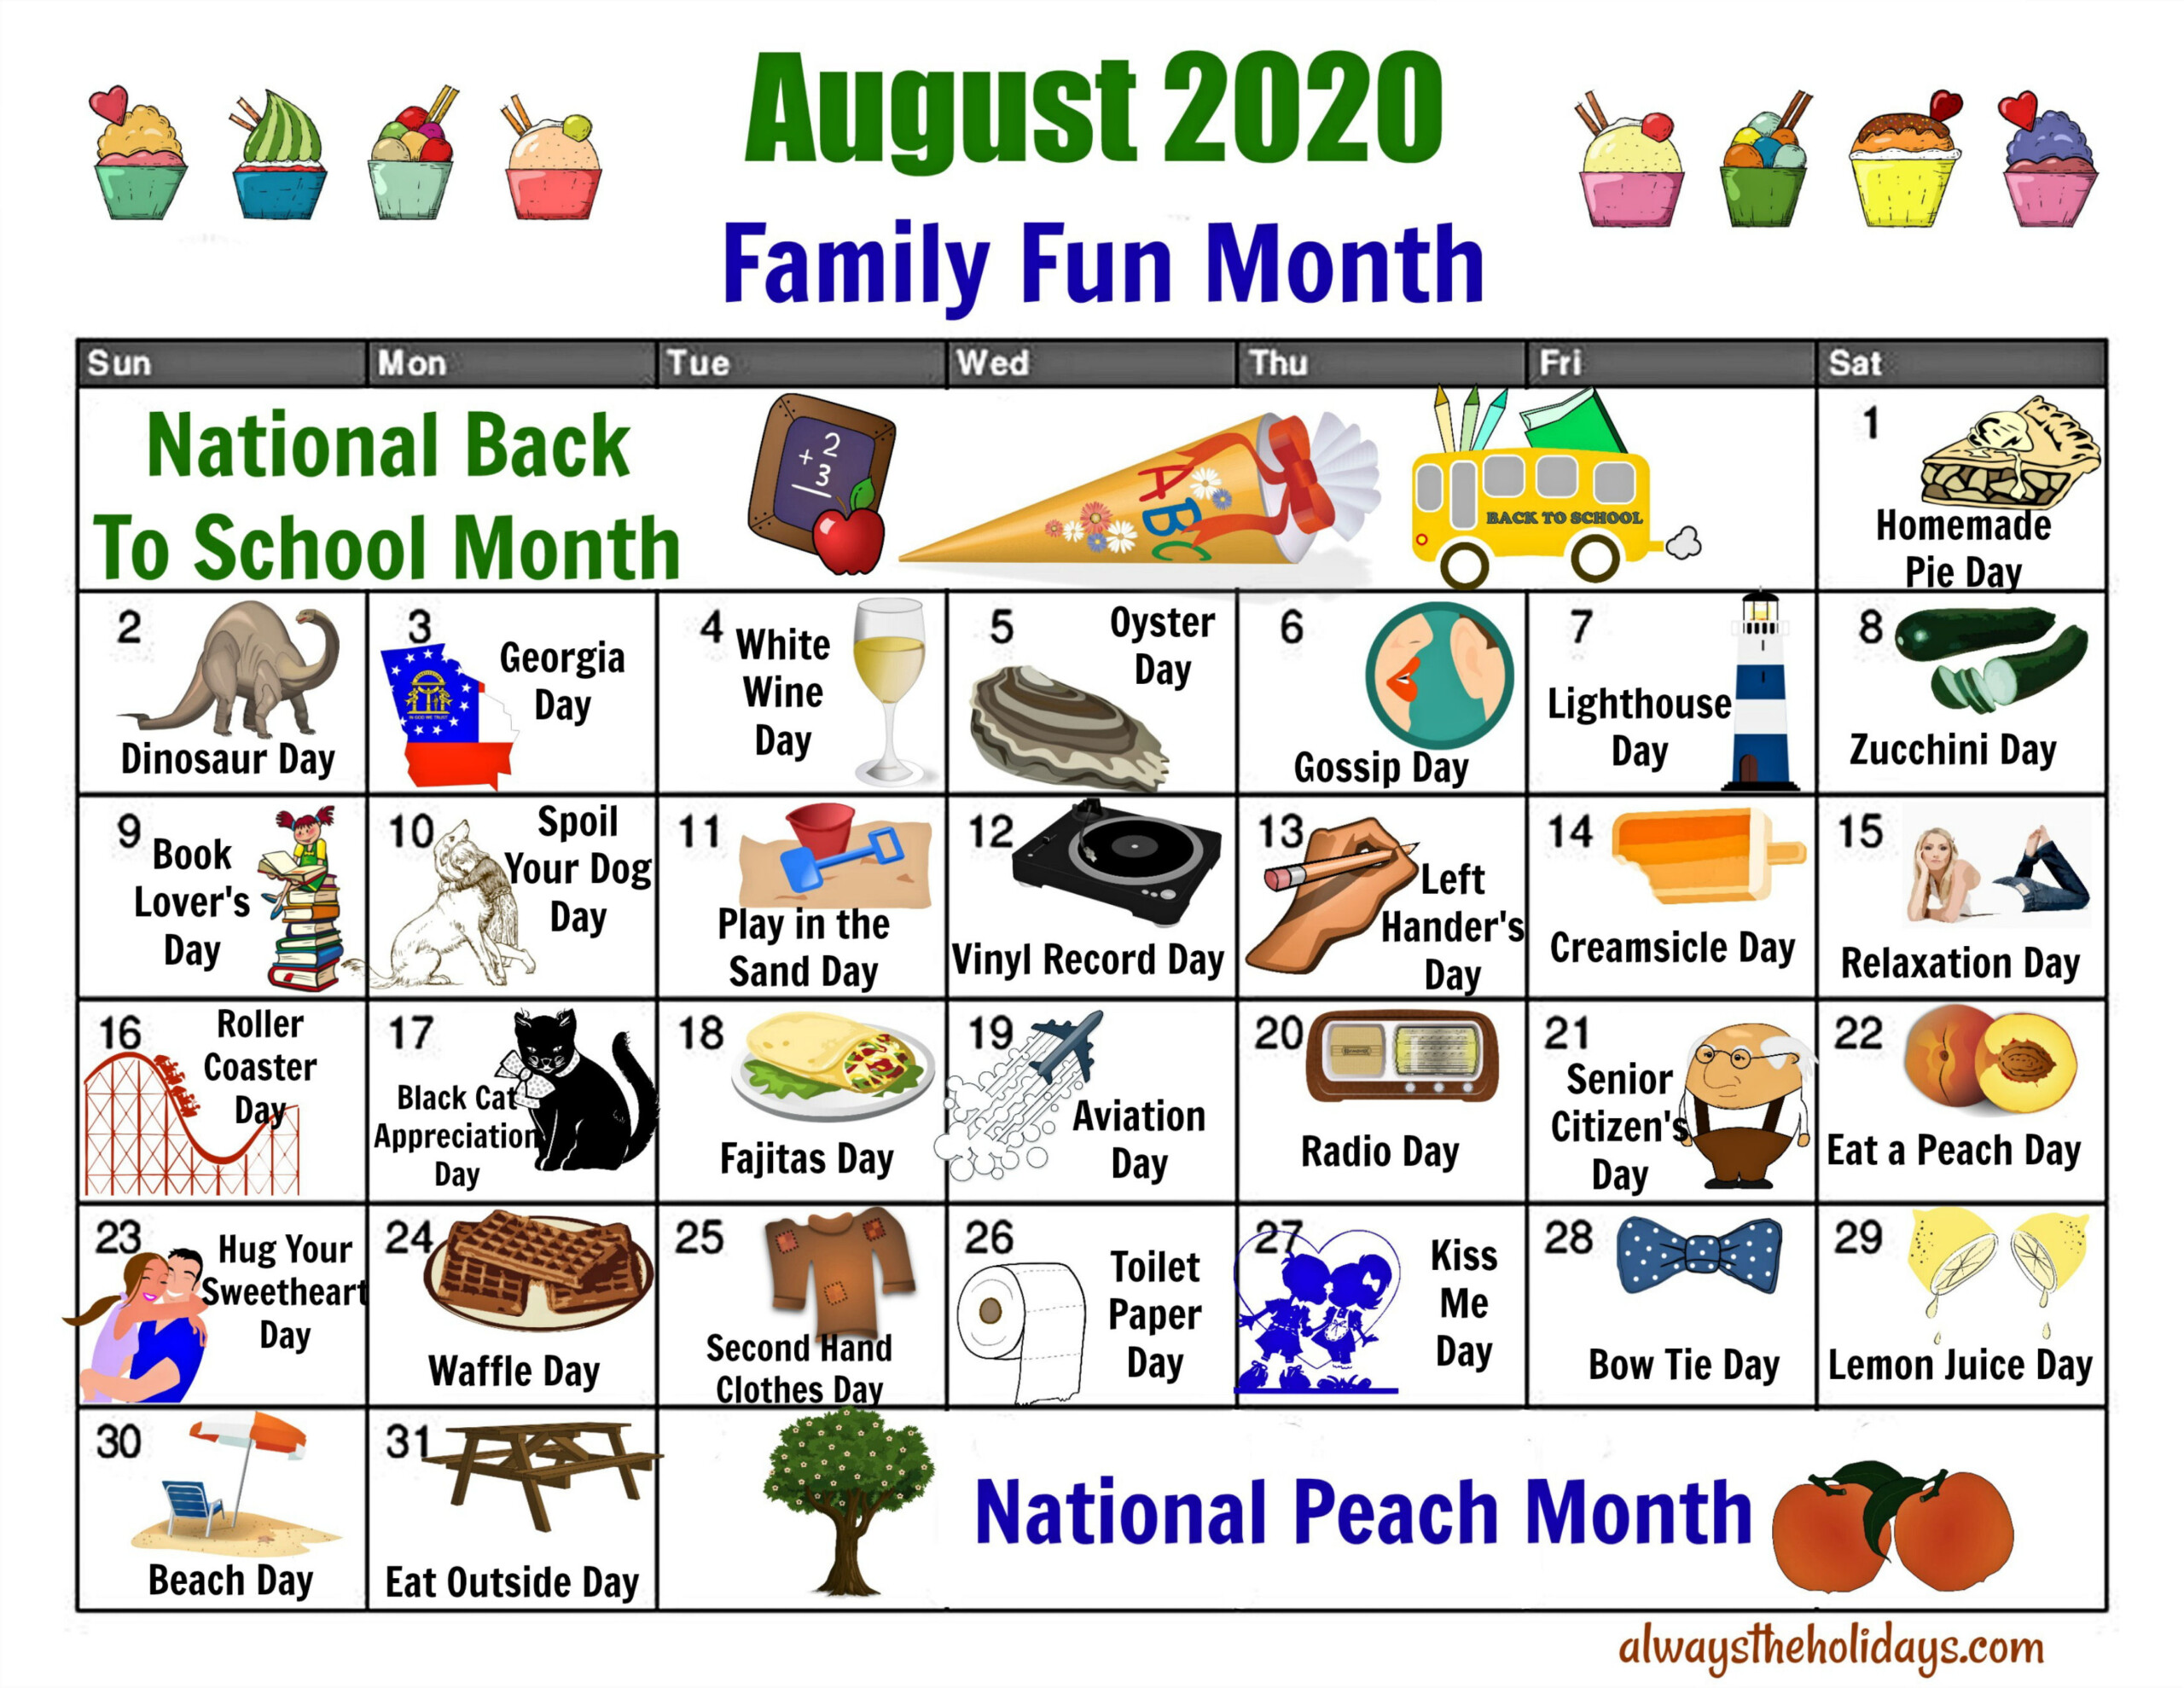 August National Day Calendar - Free Printable Of National Days